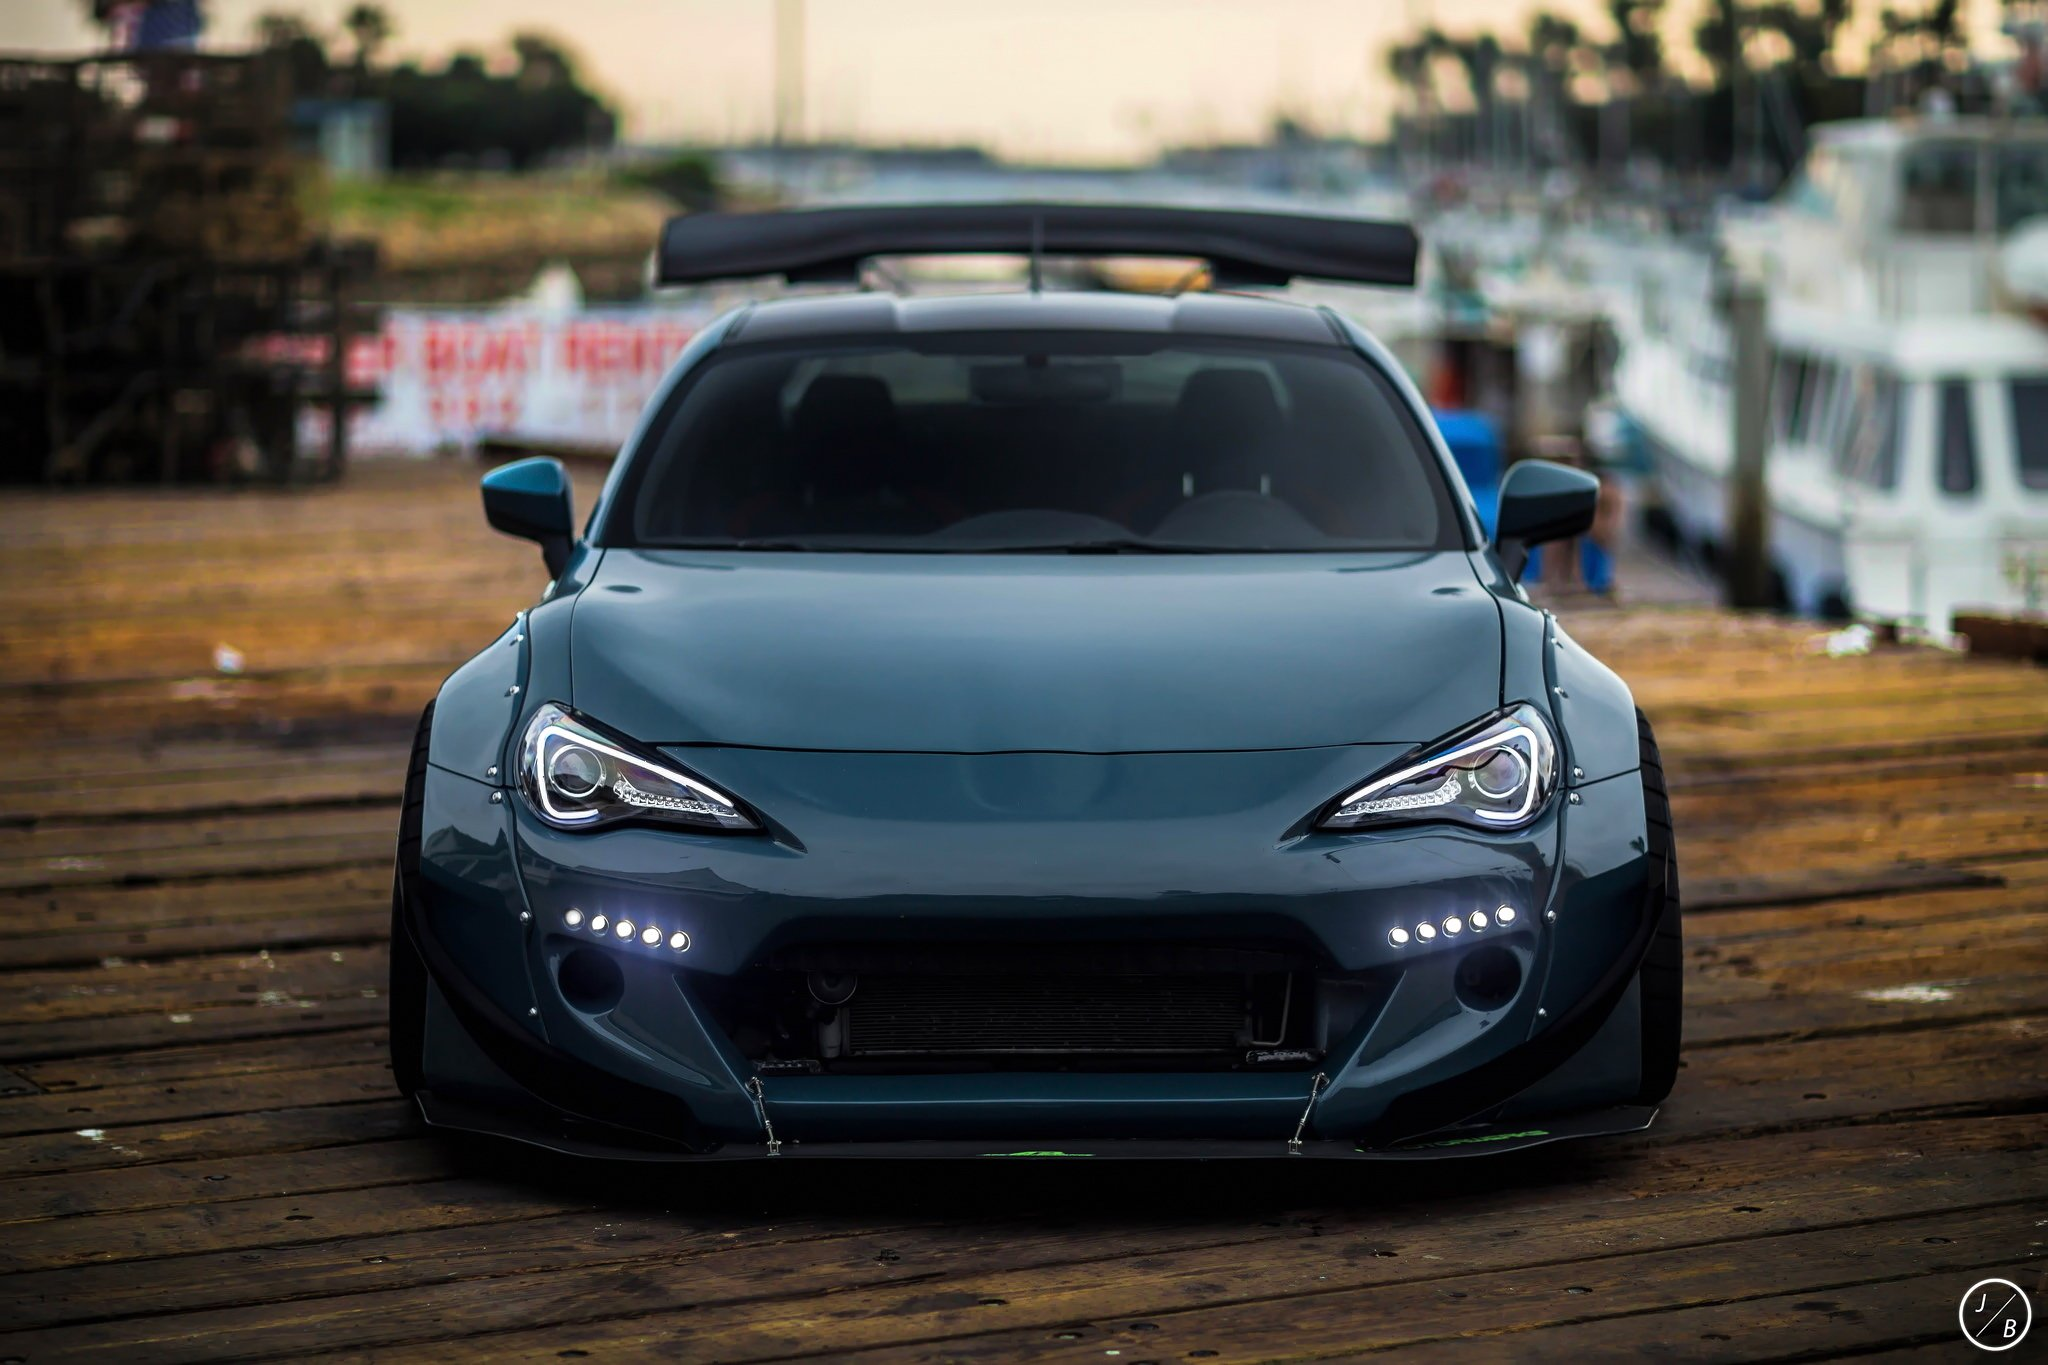 Toyota GT 86 Wallpapers Images Photos Pictures Backgrounds 2048x1365